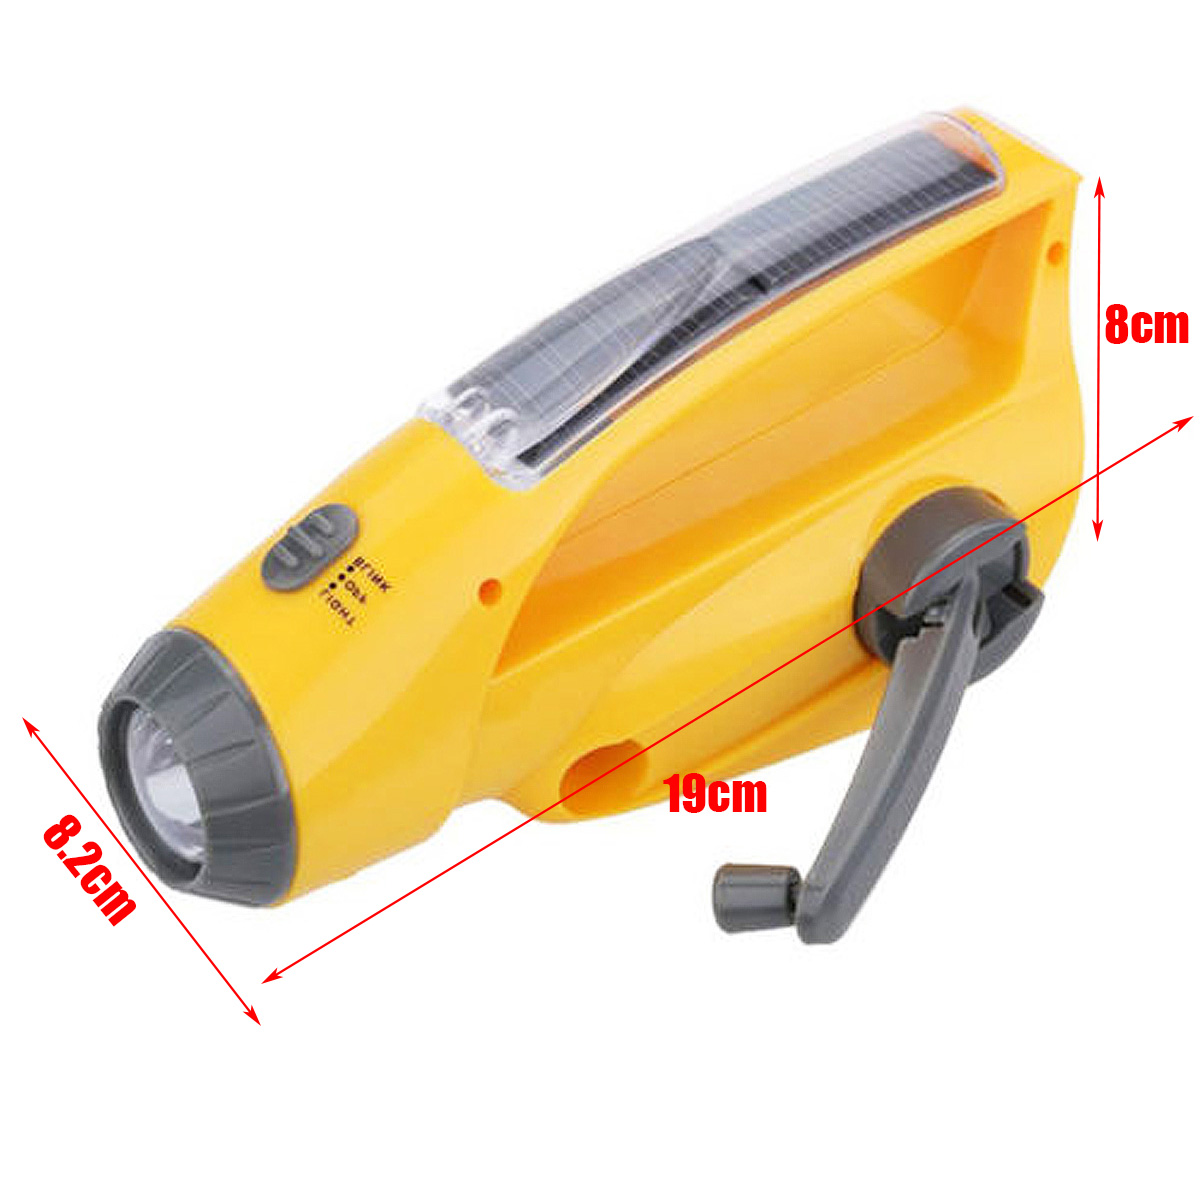 Solar/ Hand Crank Dynamo Emergency LED Flashlight Torch Alarm Phone Charger Radio